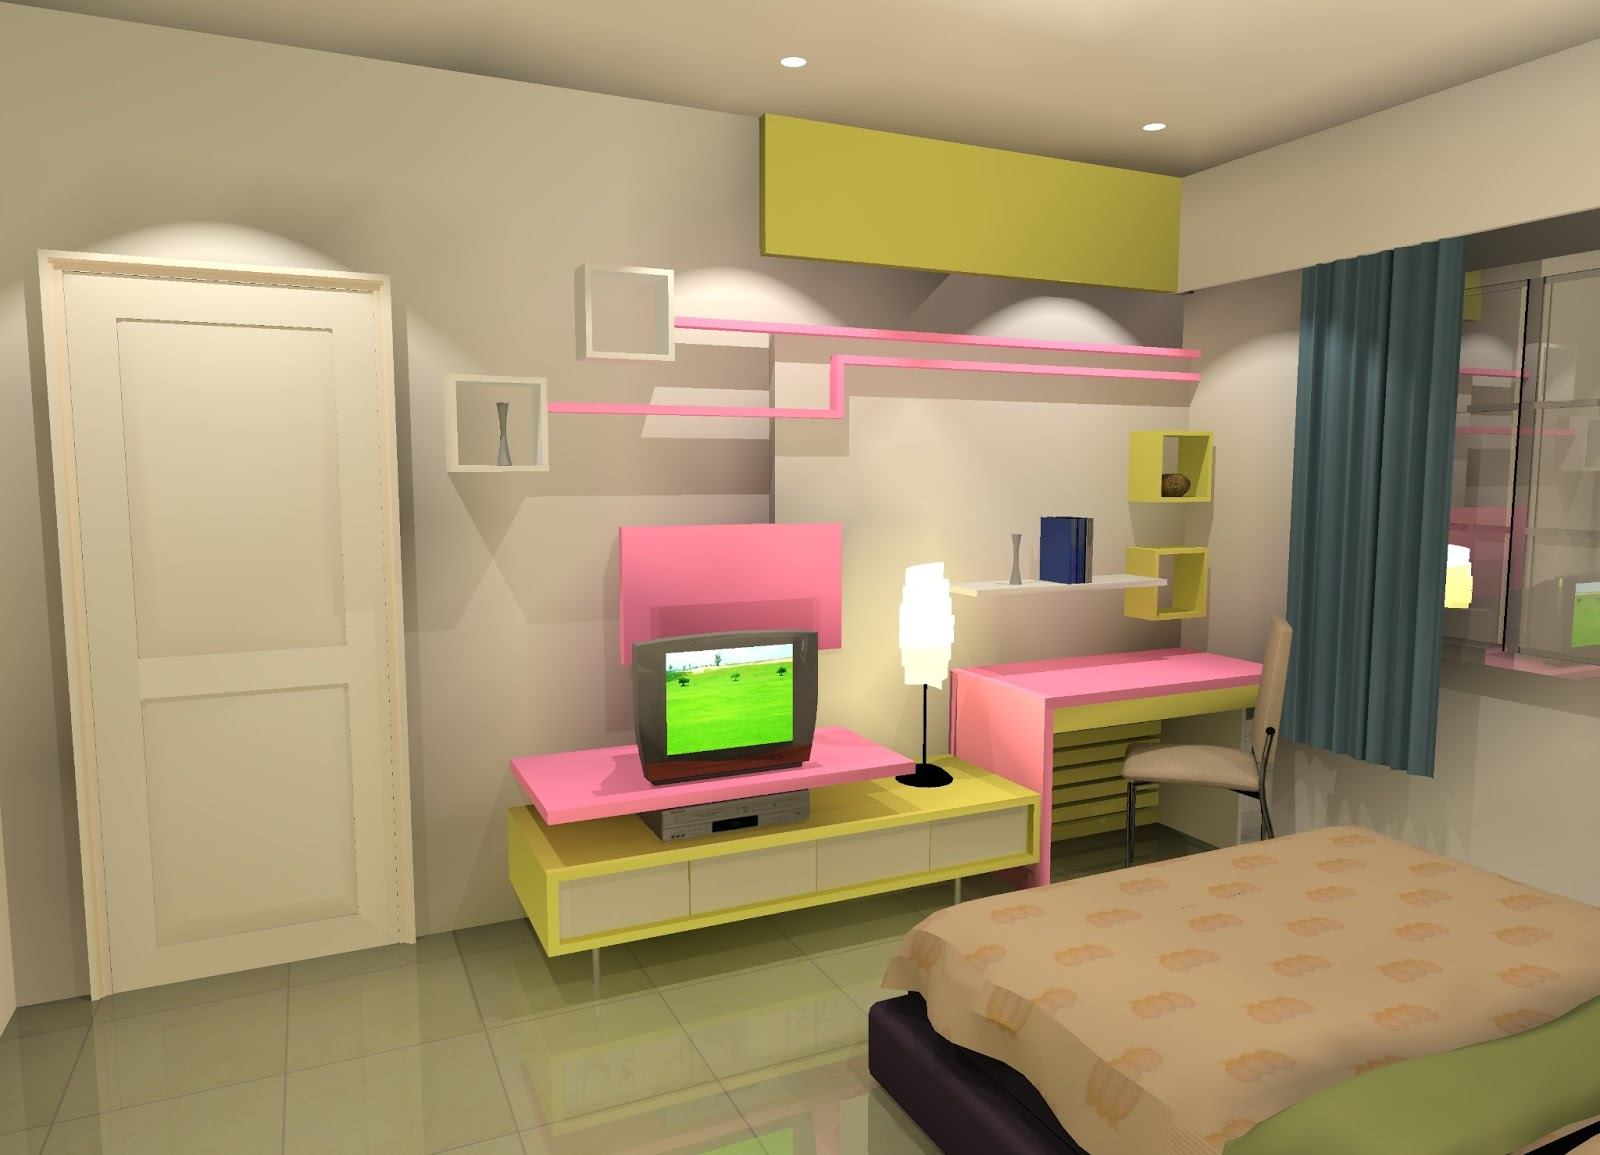 Gambar Tempat Tidur Anak Anak Soft Kitchen Idea Set Minimalis Soft Kitchen Idea Set Minimalisjpg